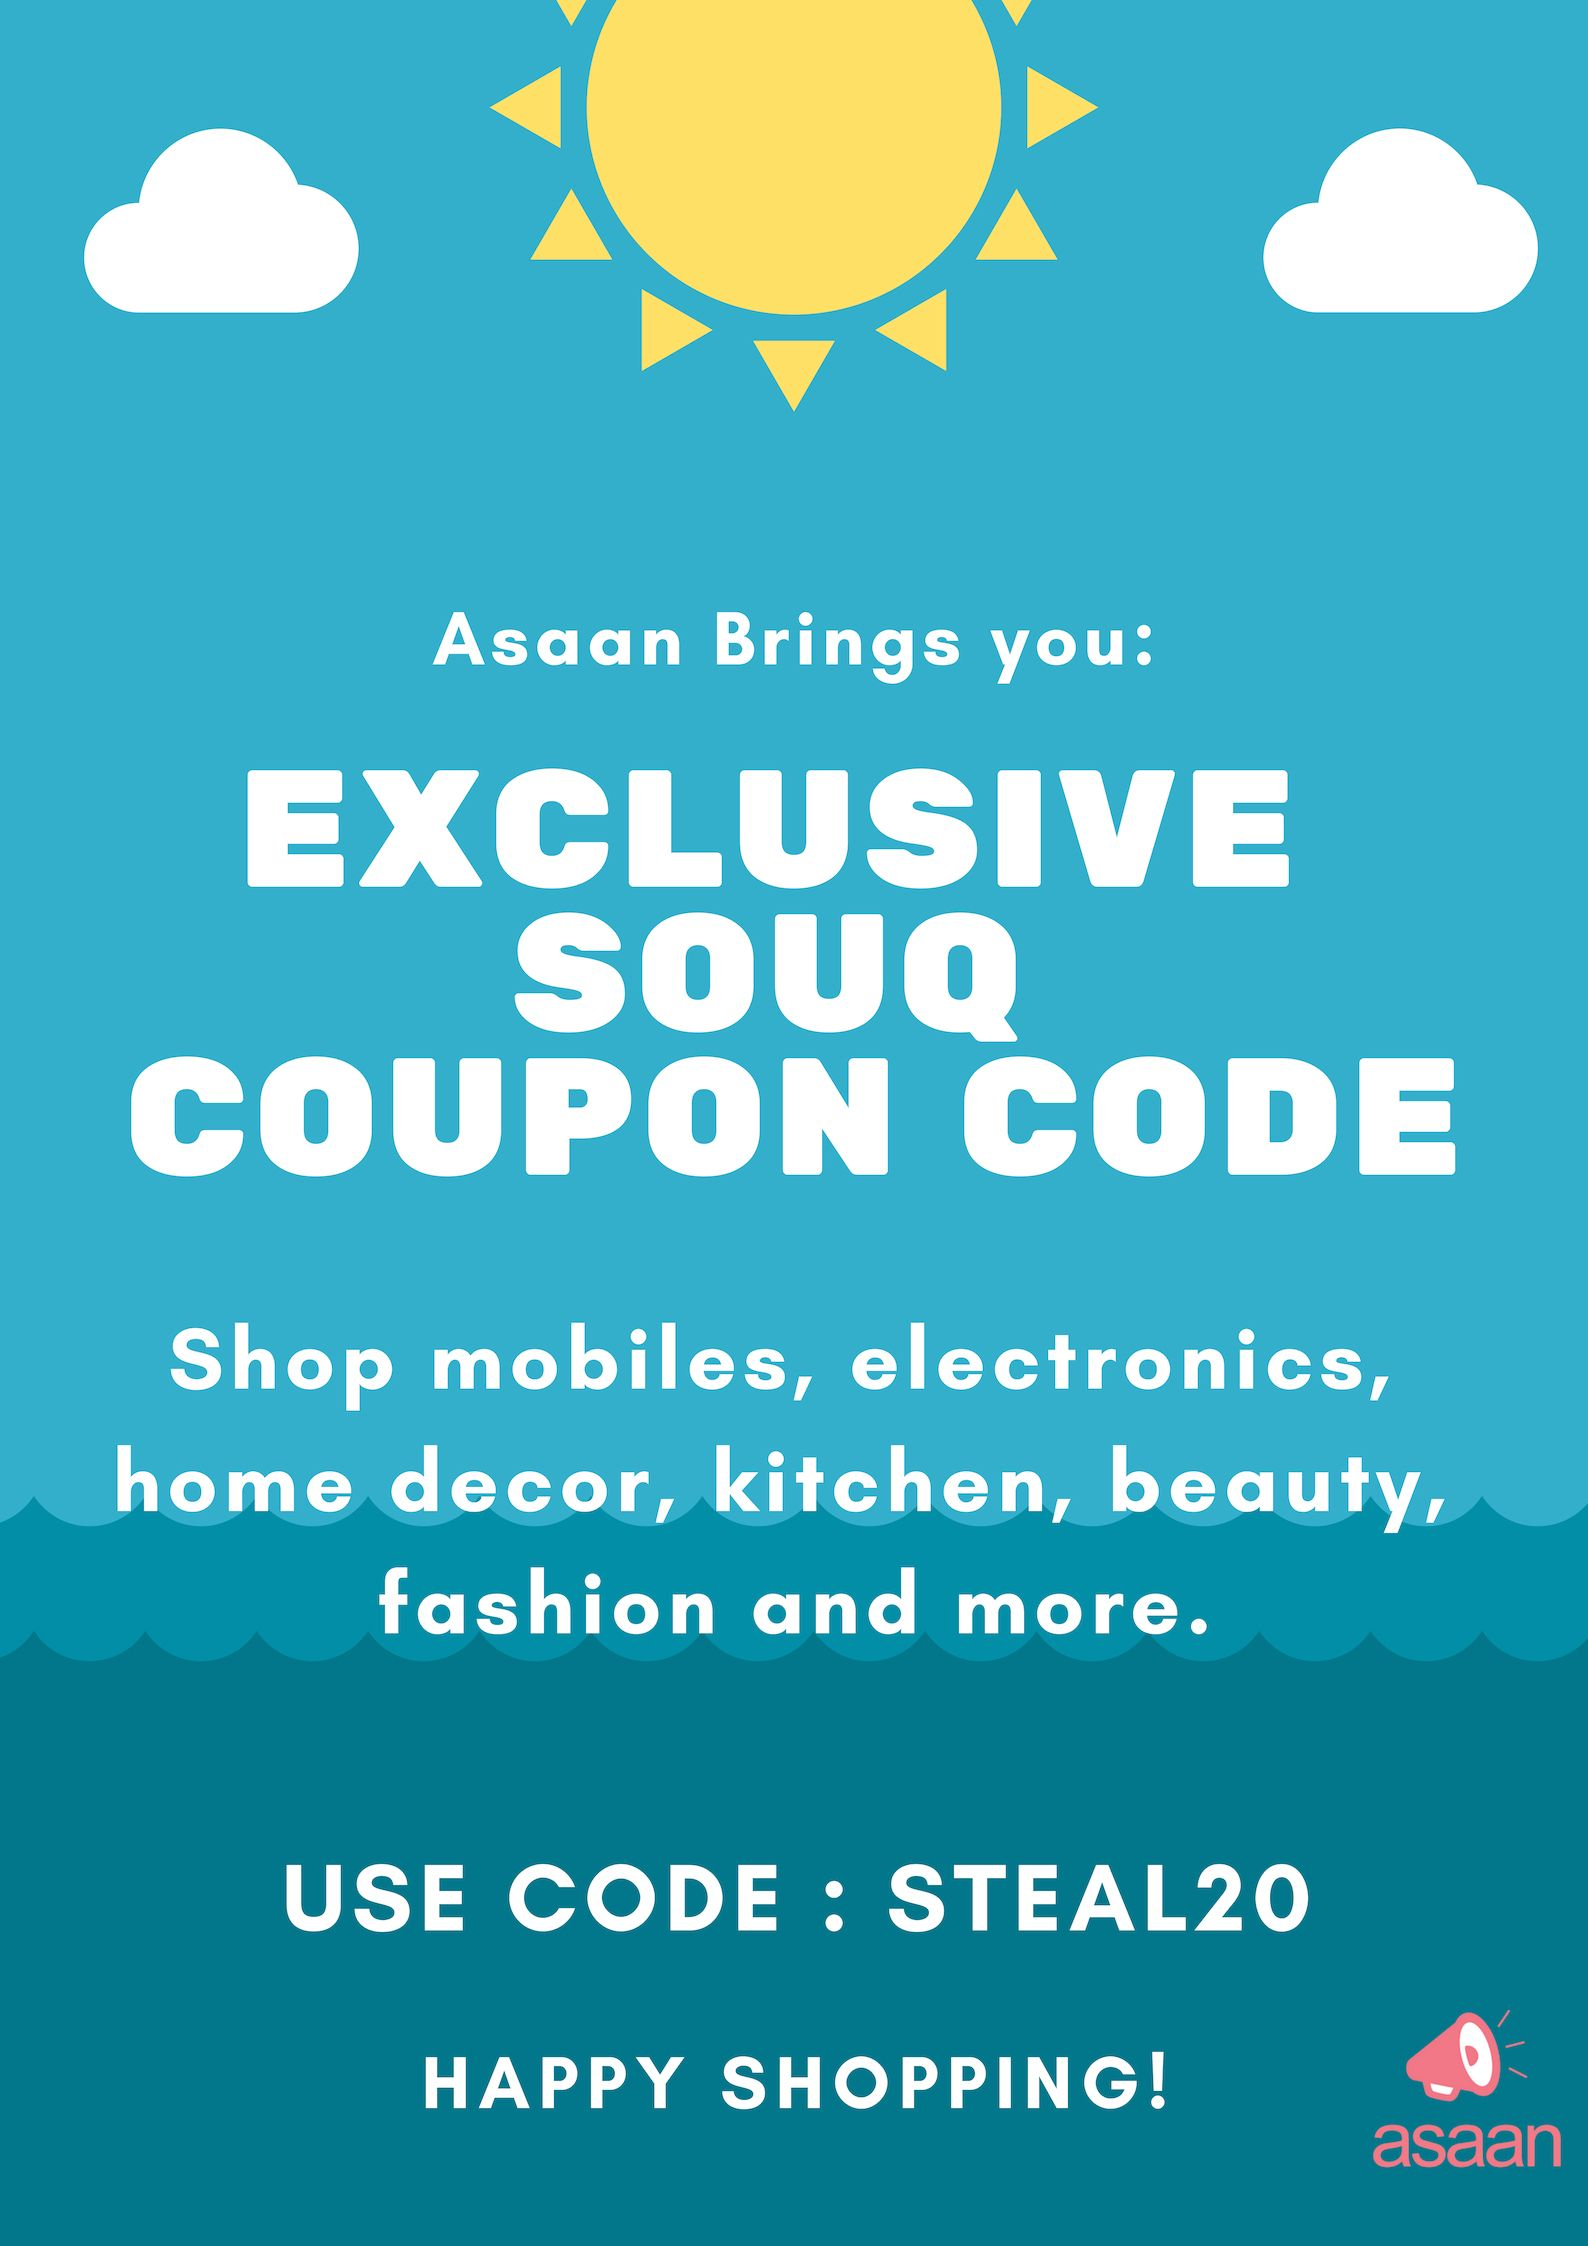 Amazon UAE Coupon Code, 60% Off Discount Code & Offers July 2019